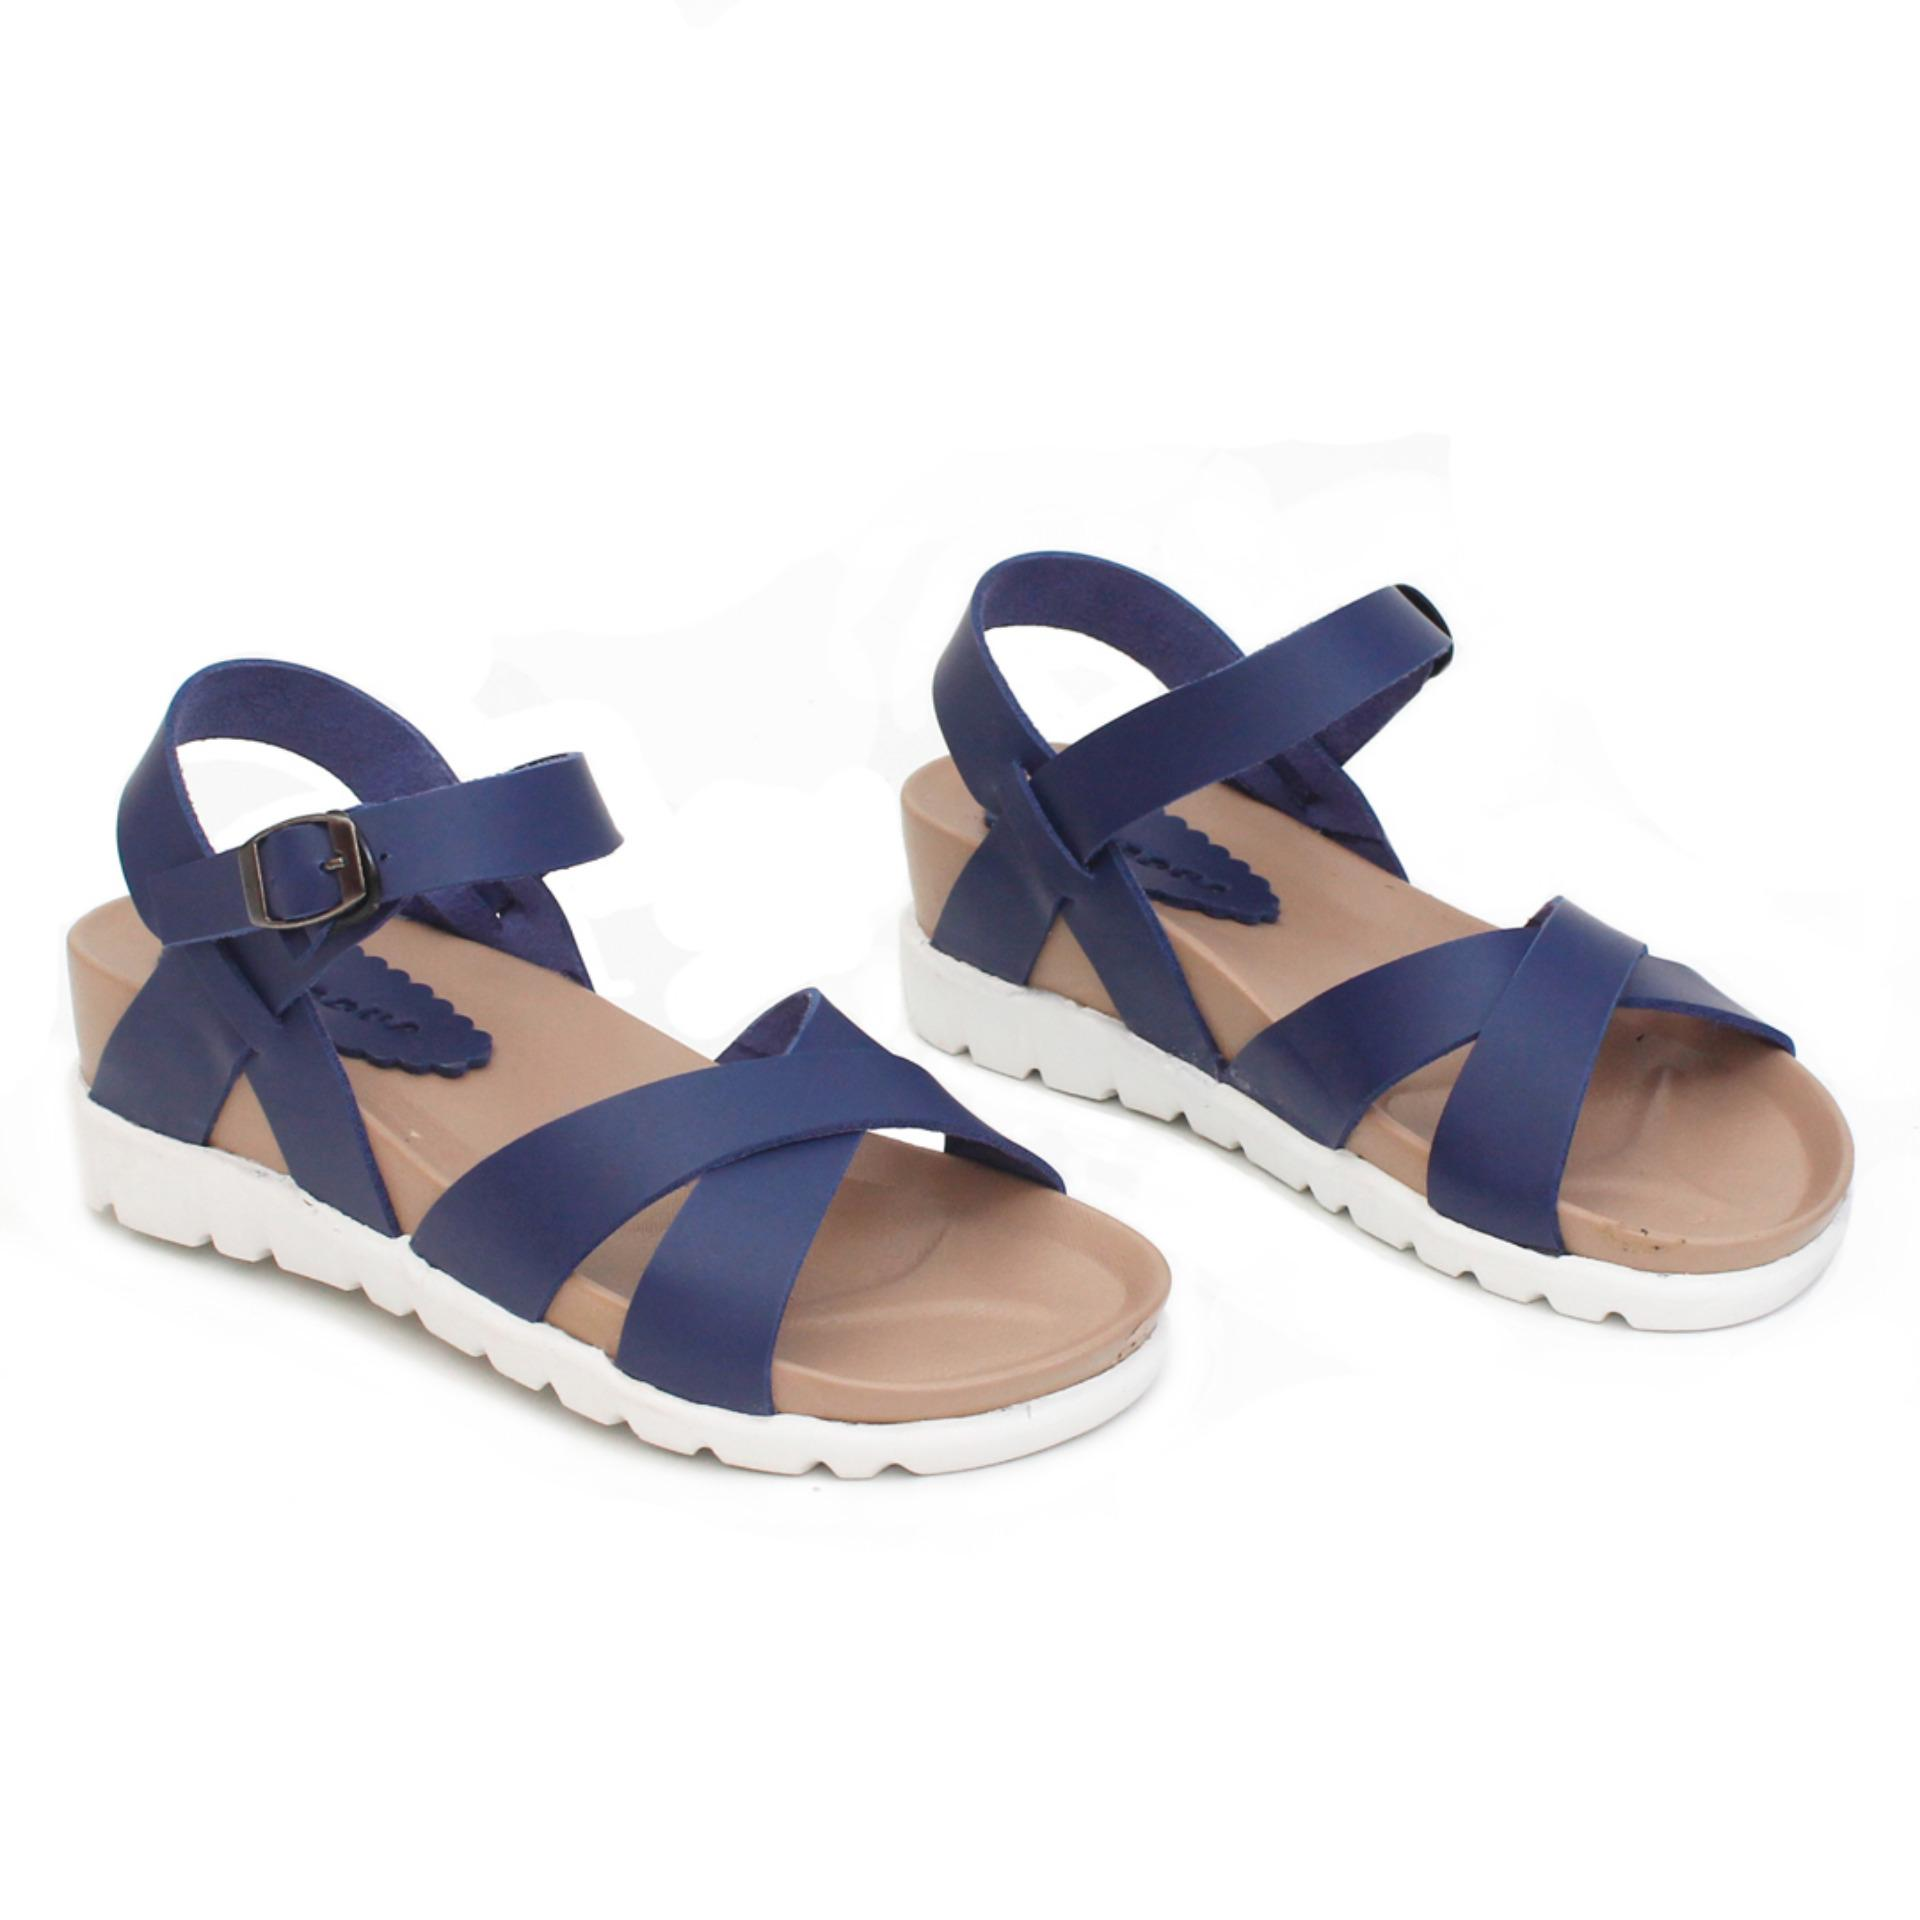 Beli Glebova Sandal Platform Wedges Strappy Cross Navy Kredit